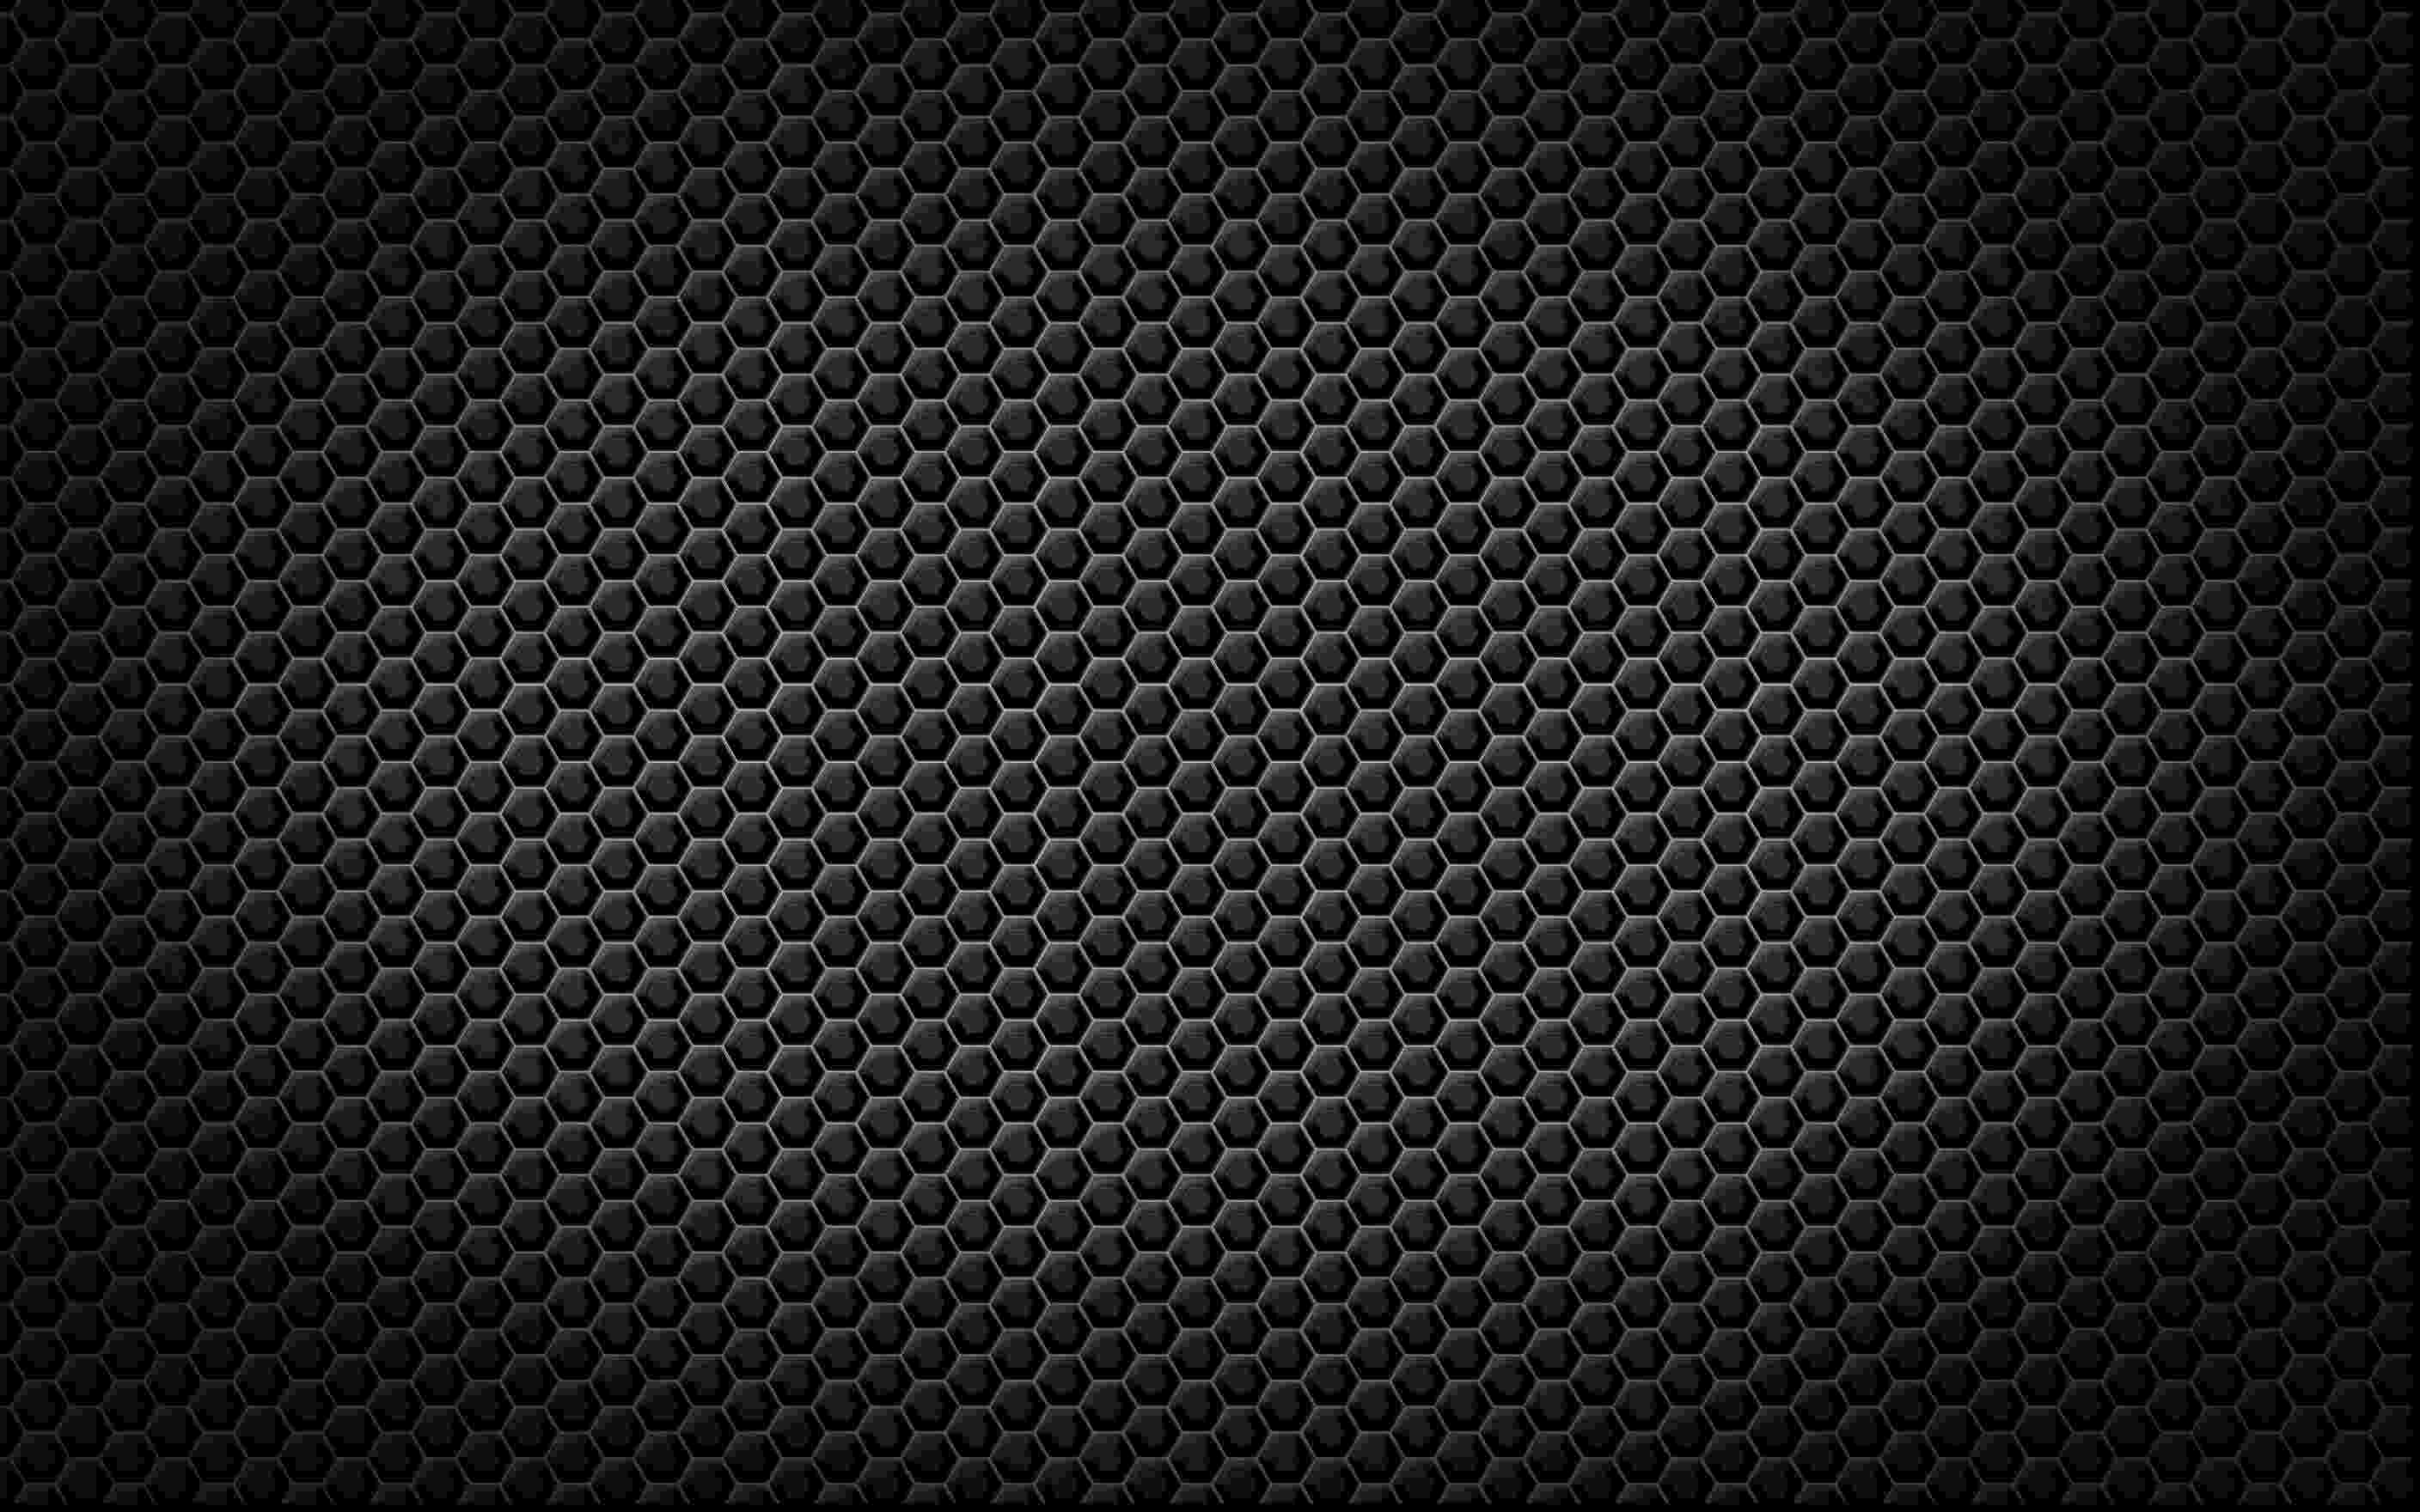 web page background color background pattern designs and resources for websites page background color web